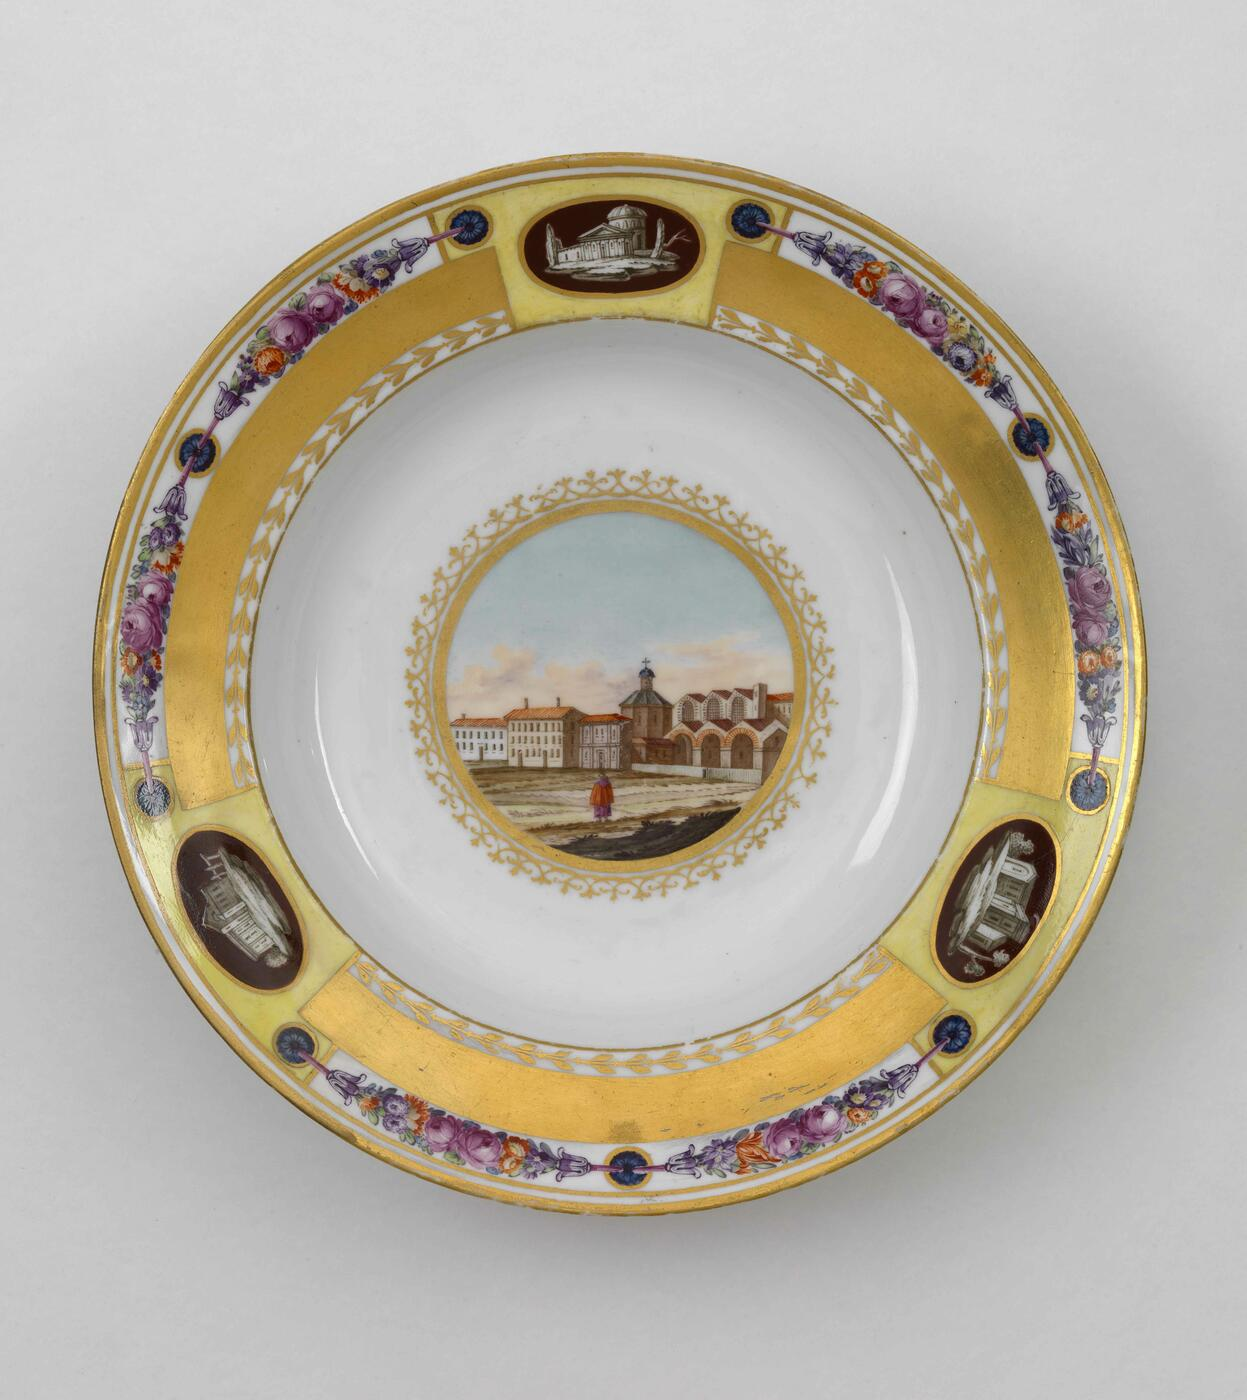 IMPERIAL PORCELAIN MANUFACTORY, ST PETERSBURG, PERIOD OF ALEXANDER I (1801-1825)